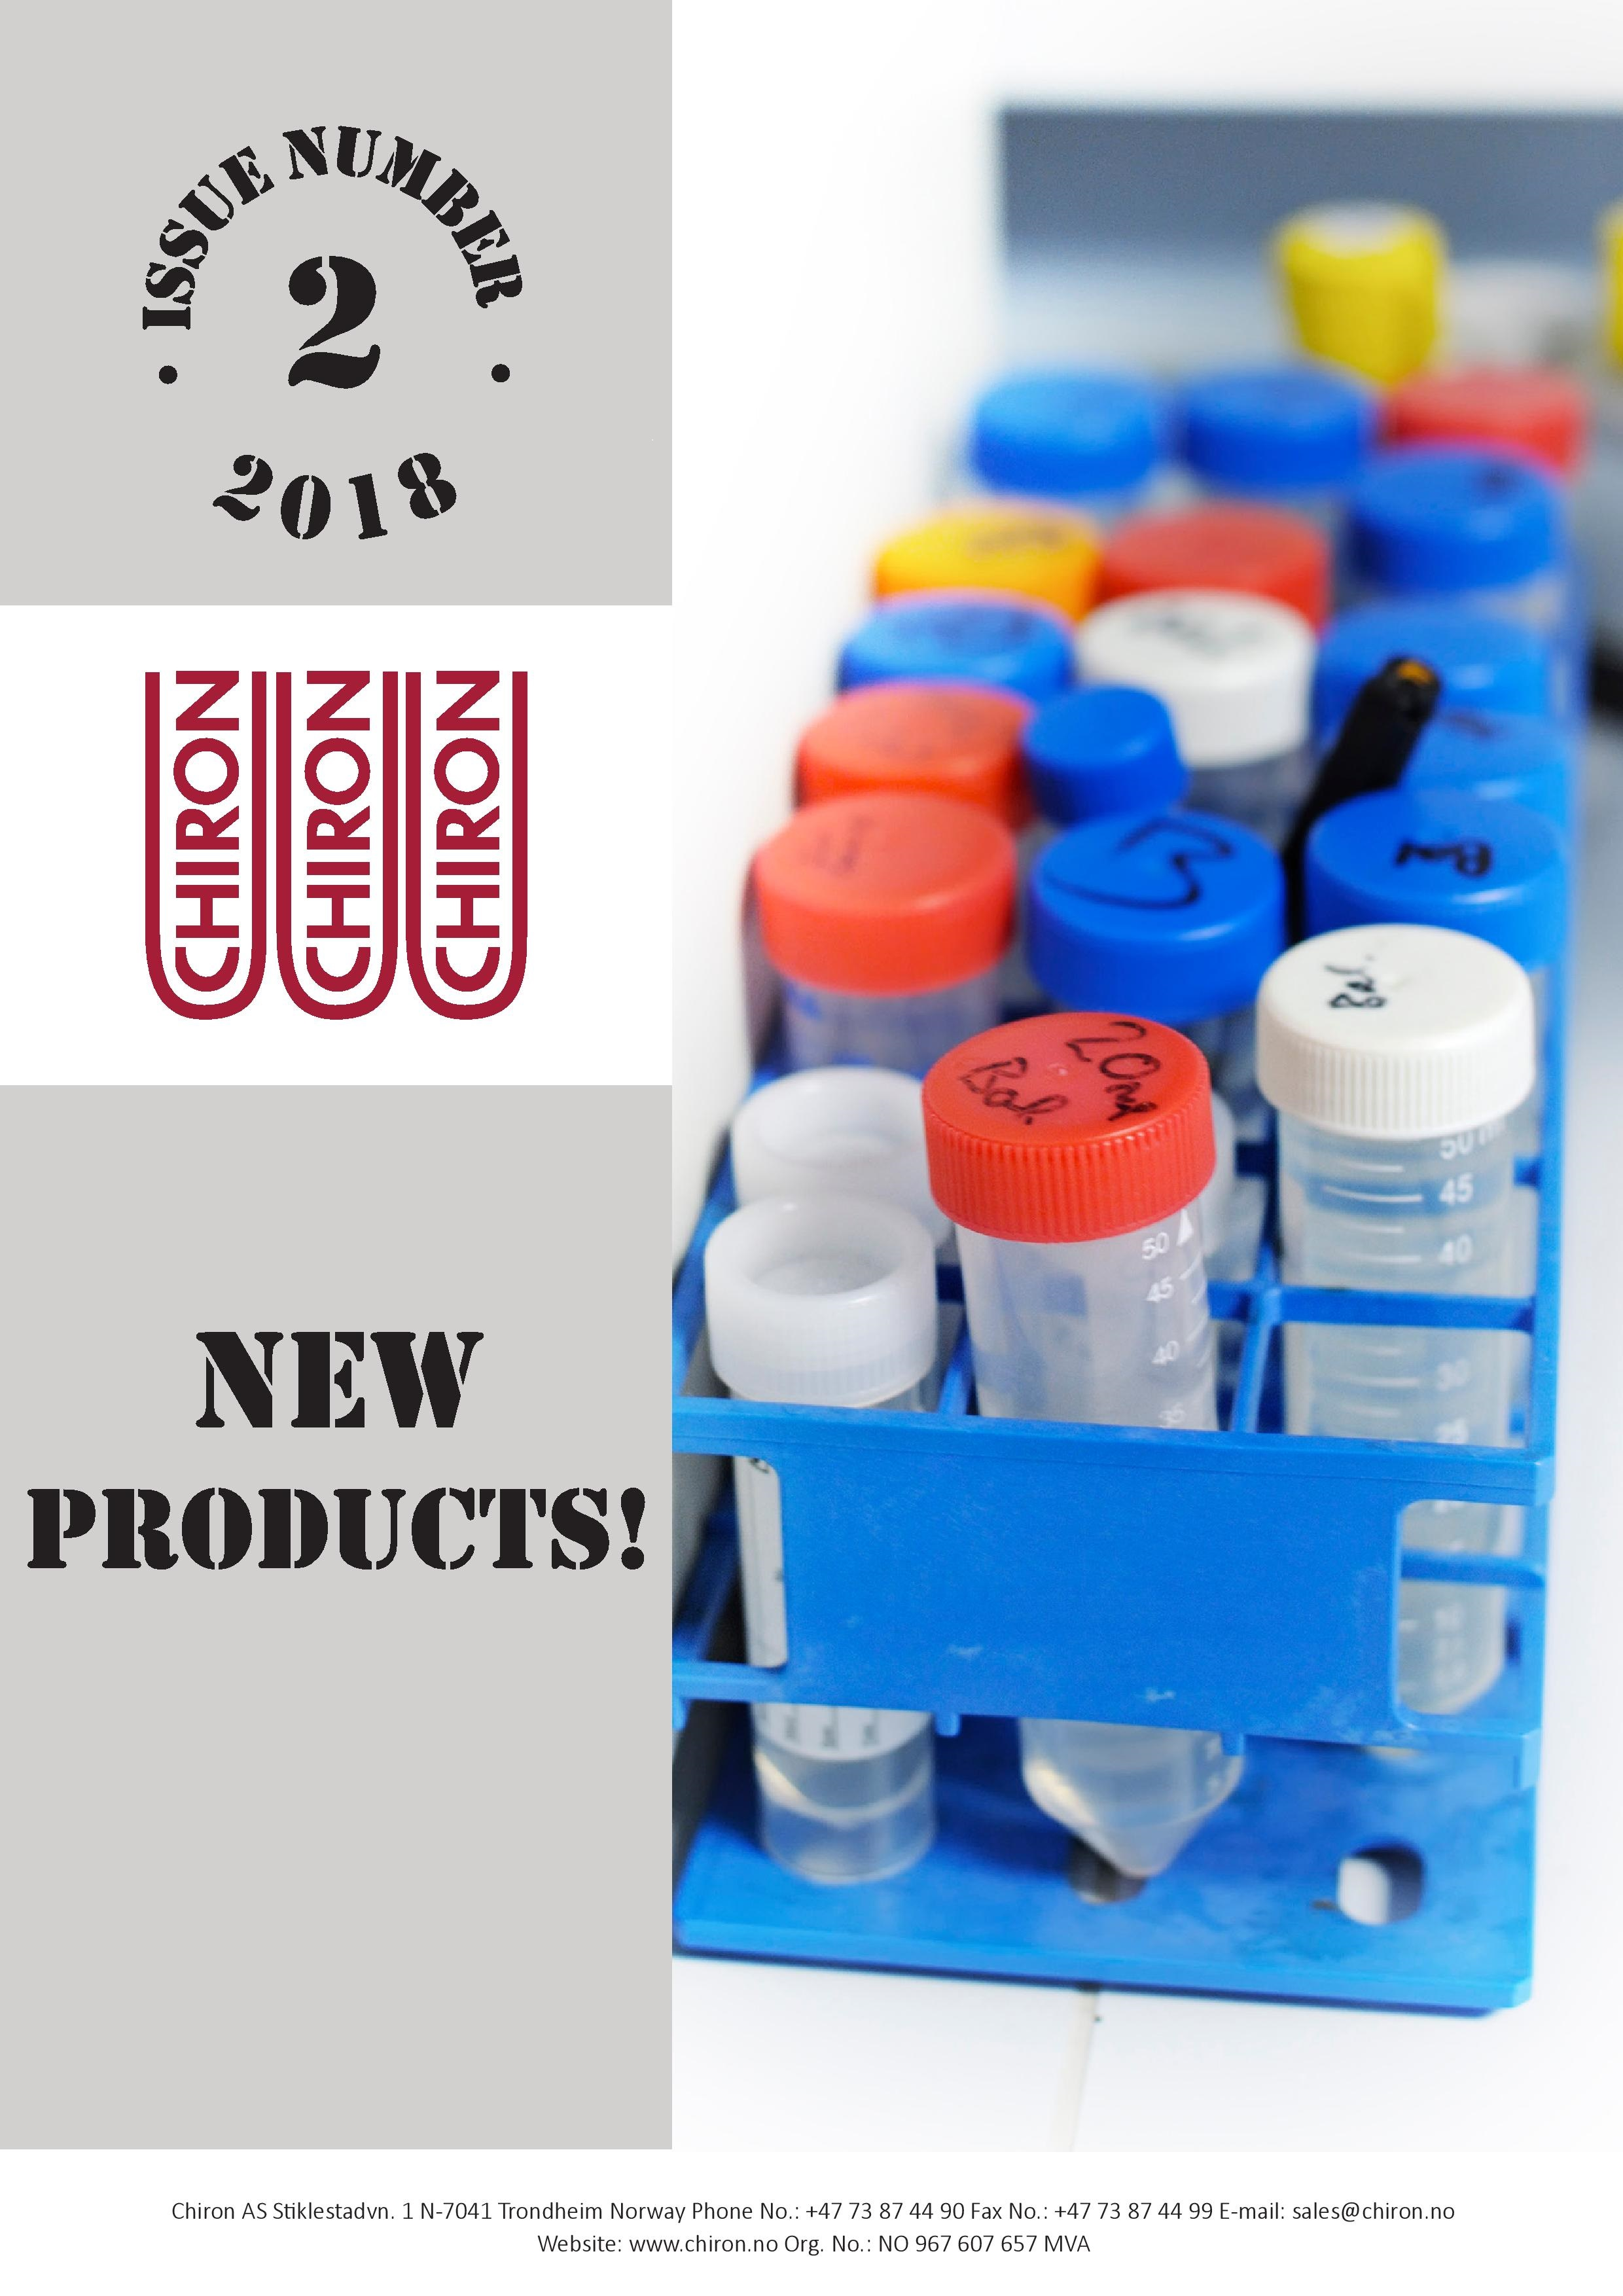 New products 2 Quarter 2 2018